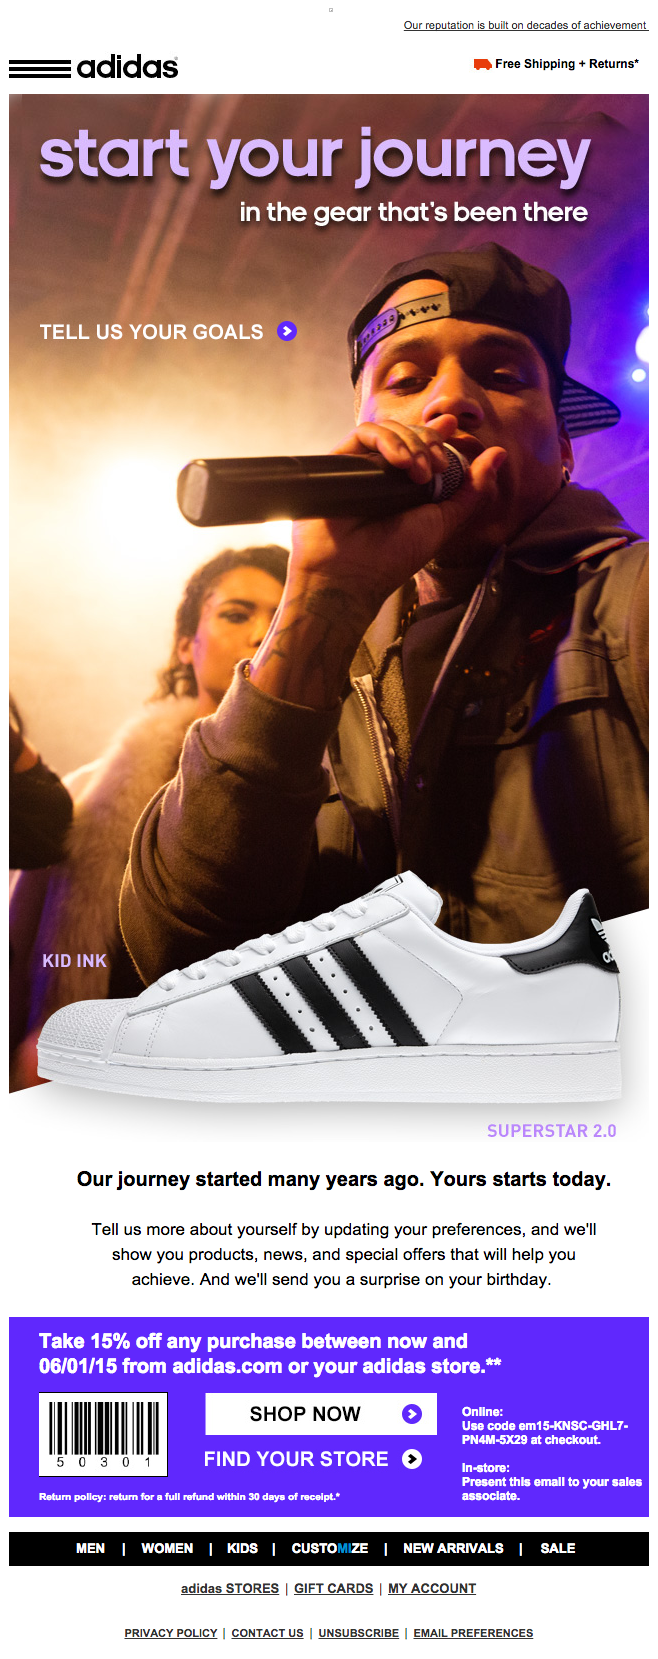 Adidas email preferences email